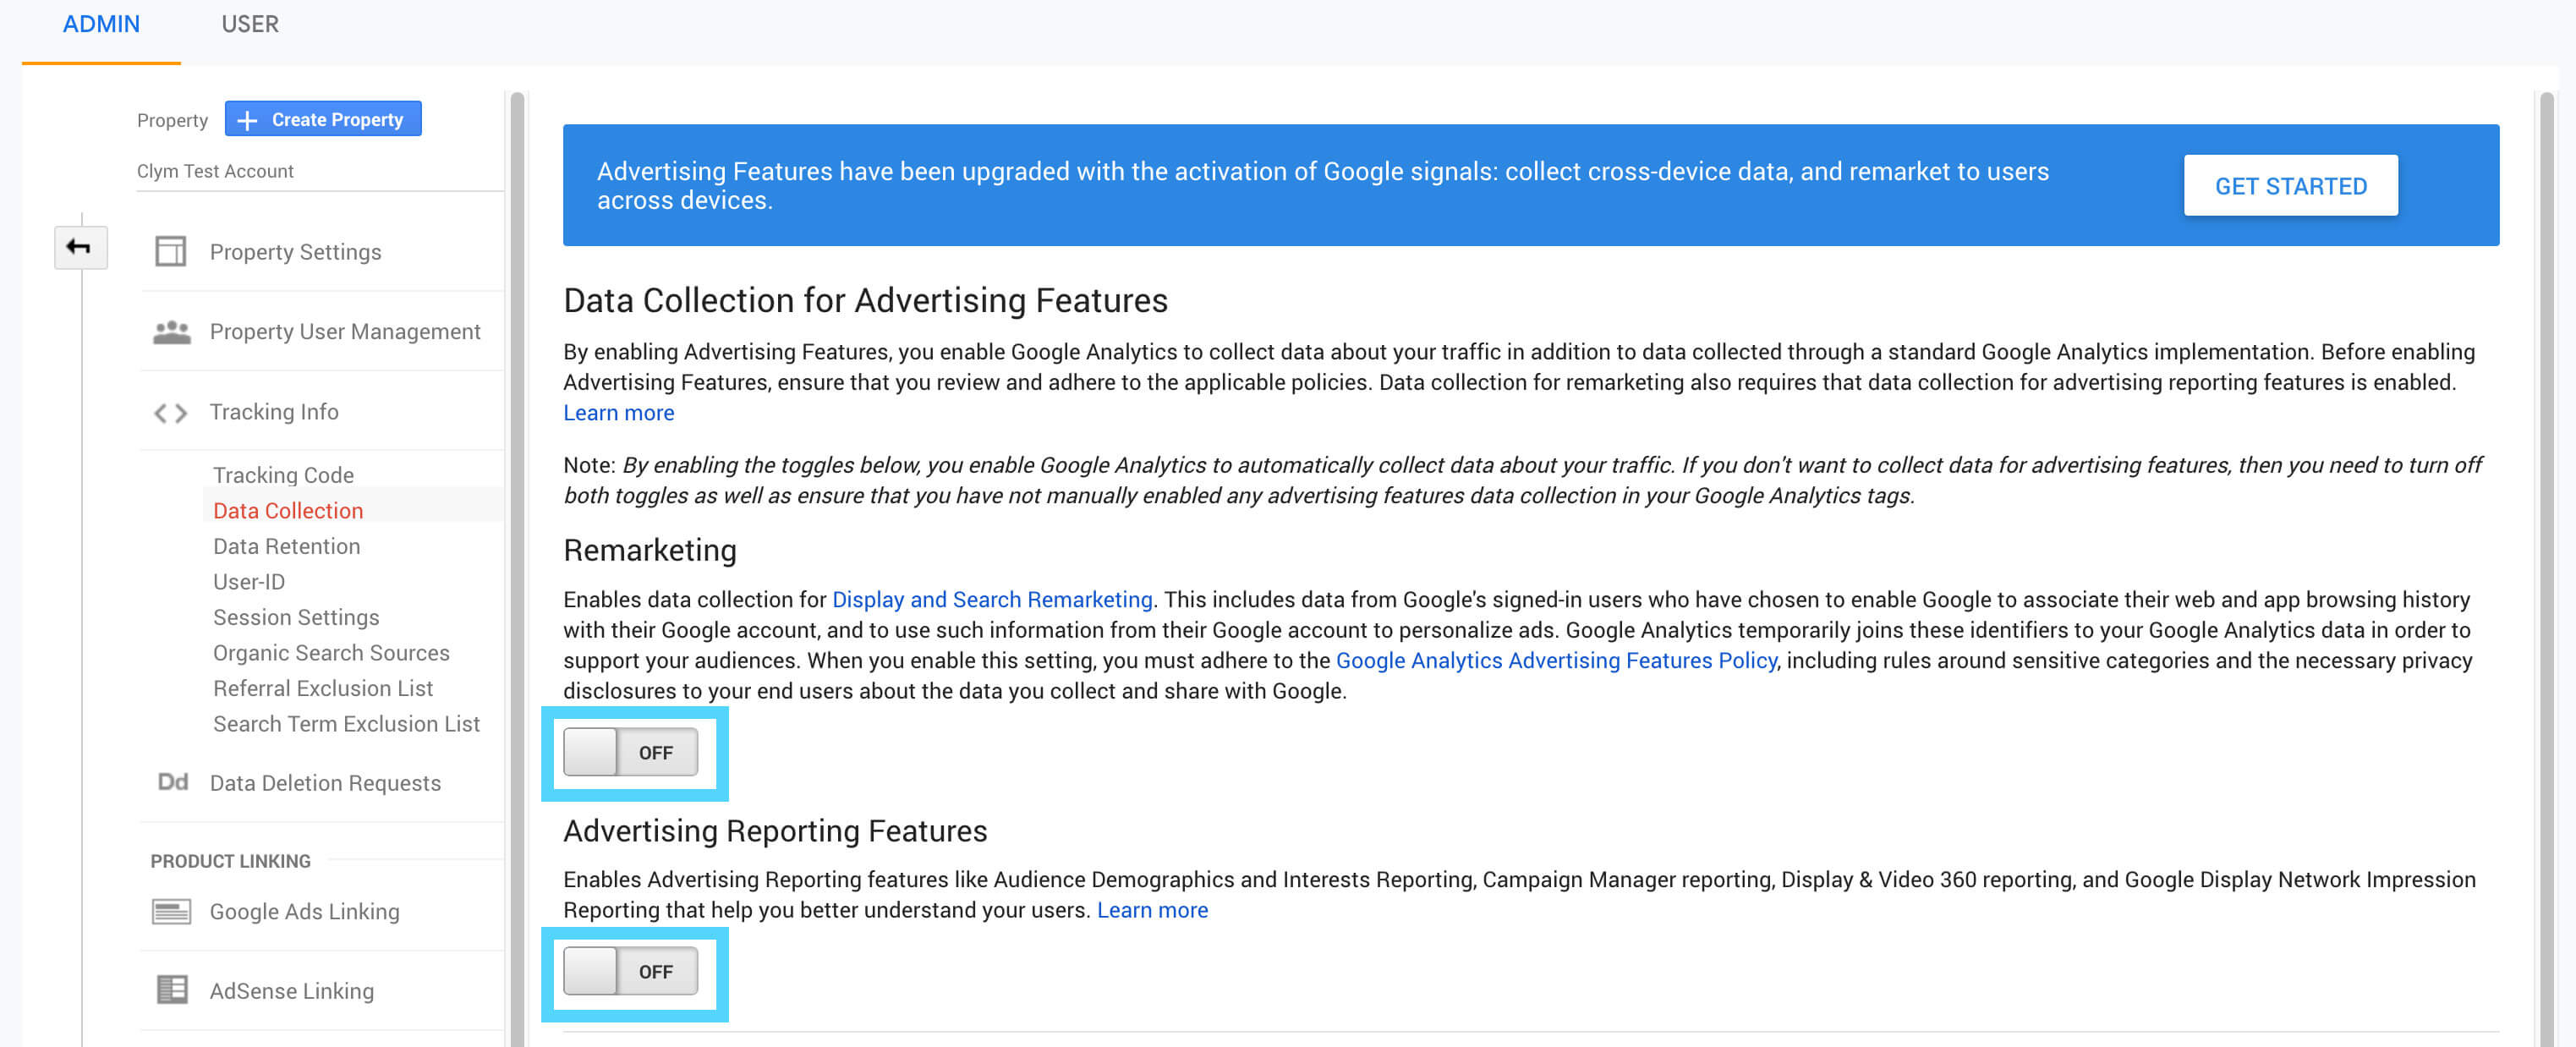 How to disable Data Collection for Advertising purposes in Google Analytics for GDPR and CCPA?